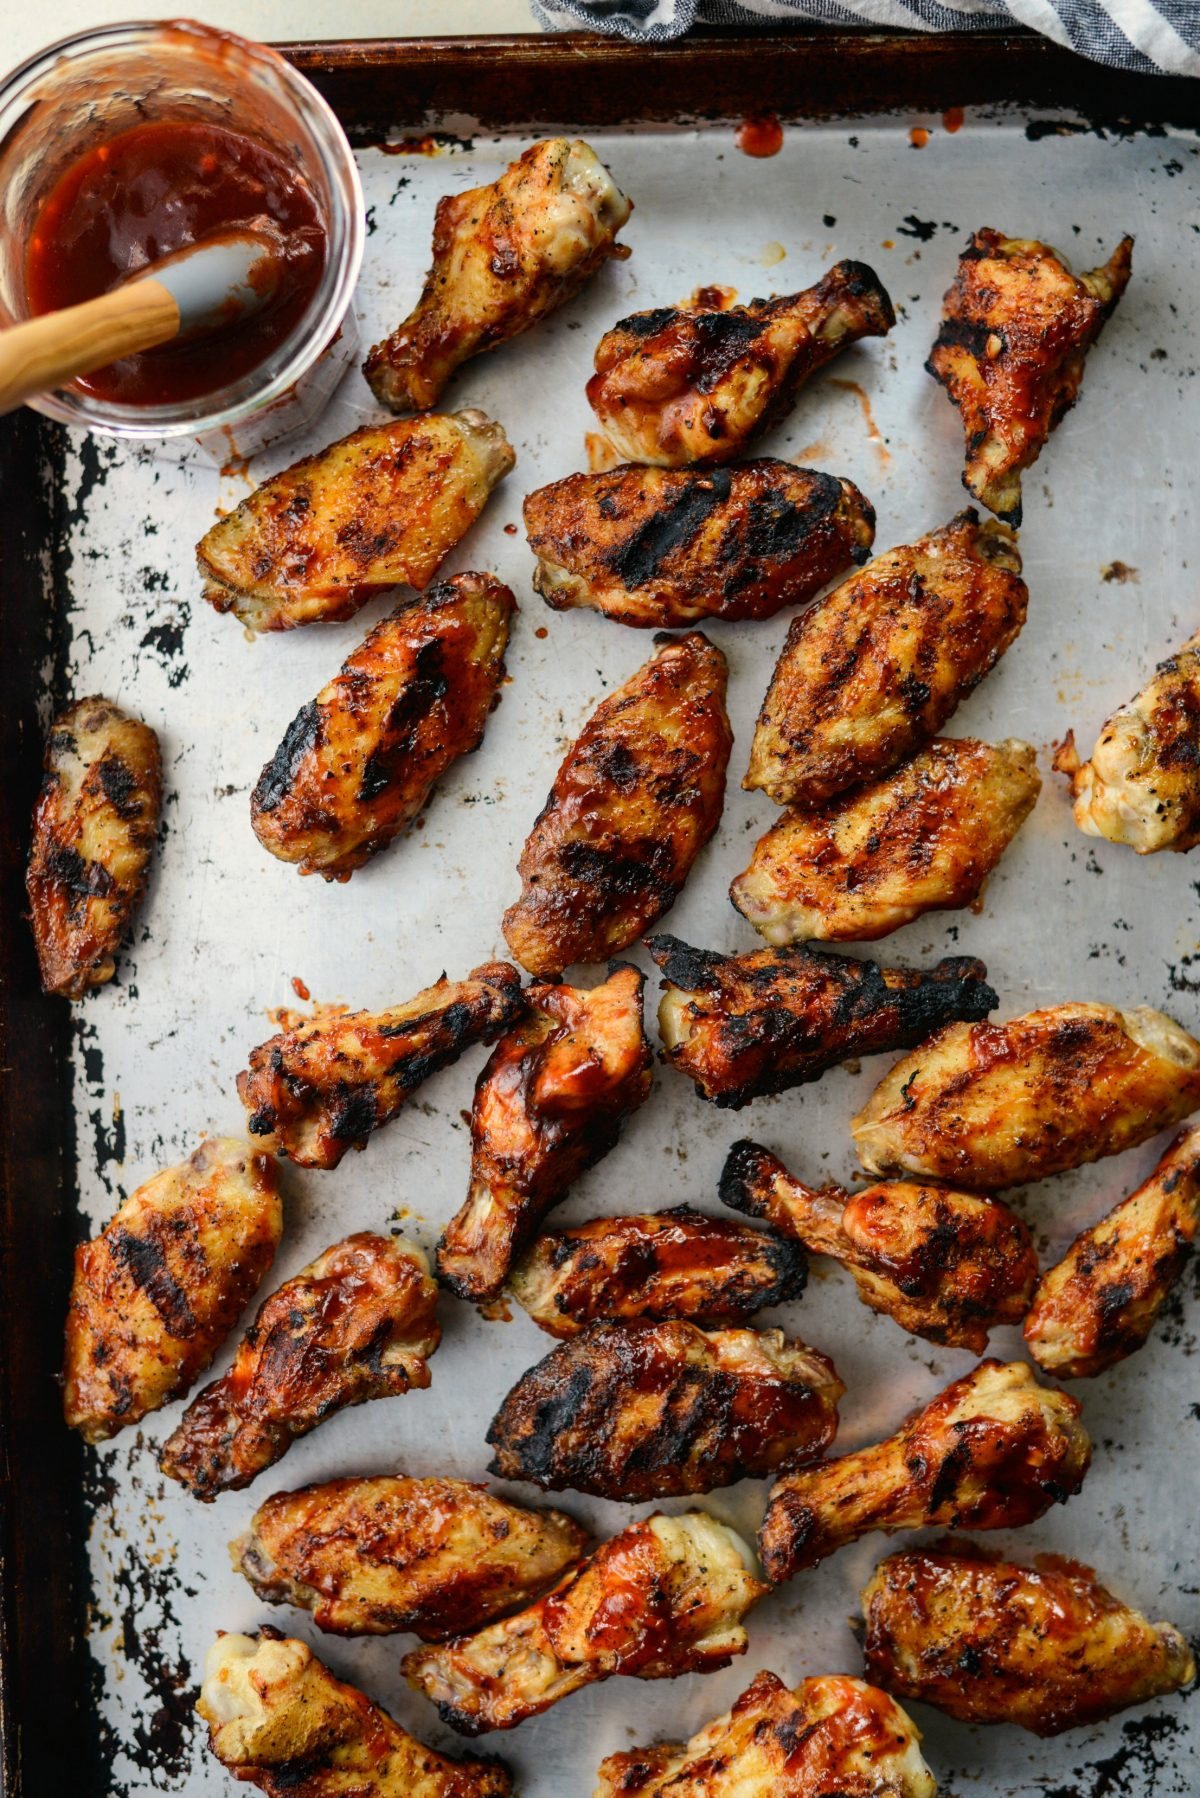 Grilled Cherry Chipotle Chicken Wings l SimplyScratch.com #grilled #wings #cookout #appetizer #homemade #barbecuesauce